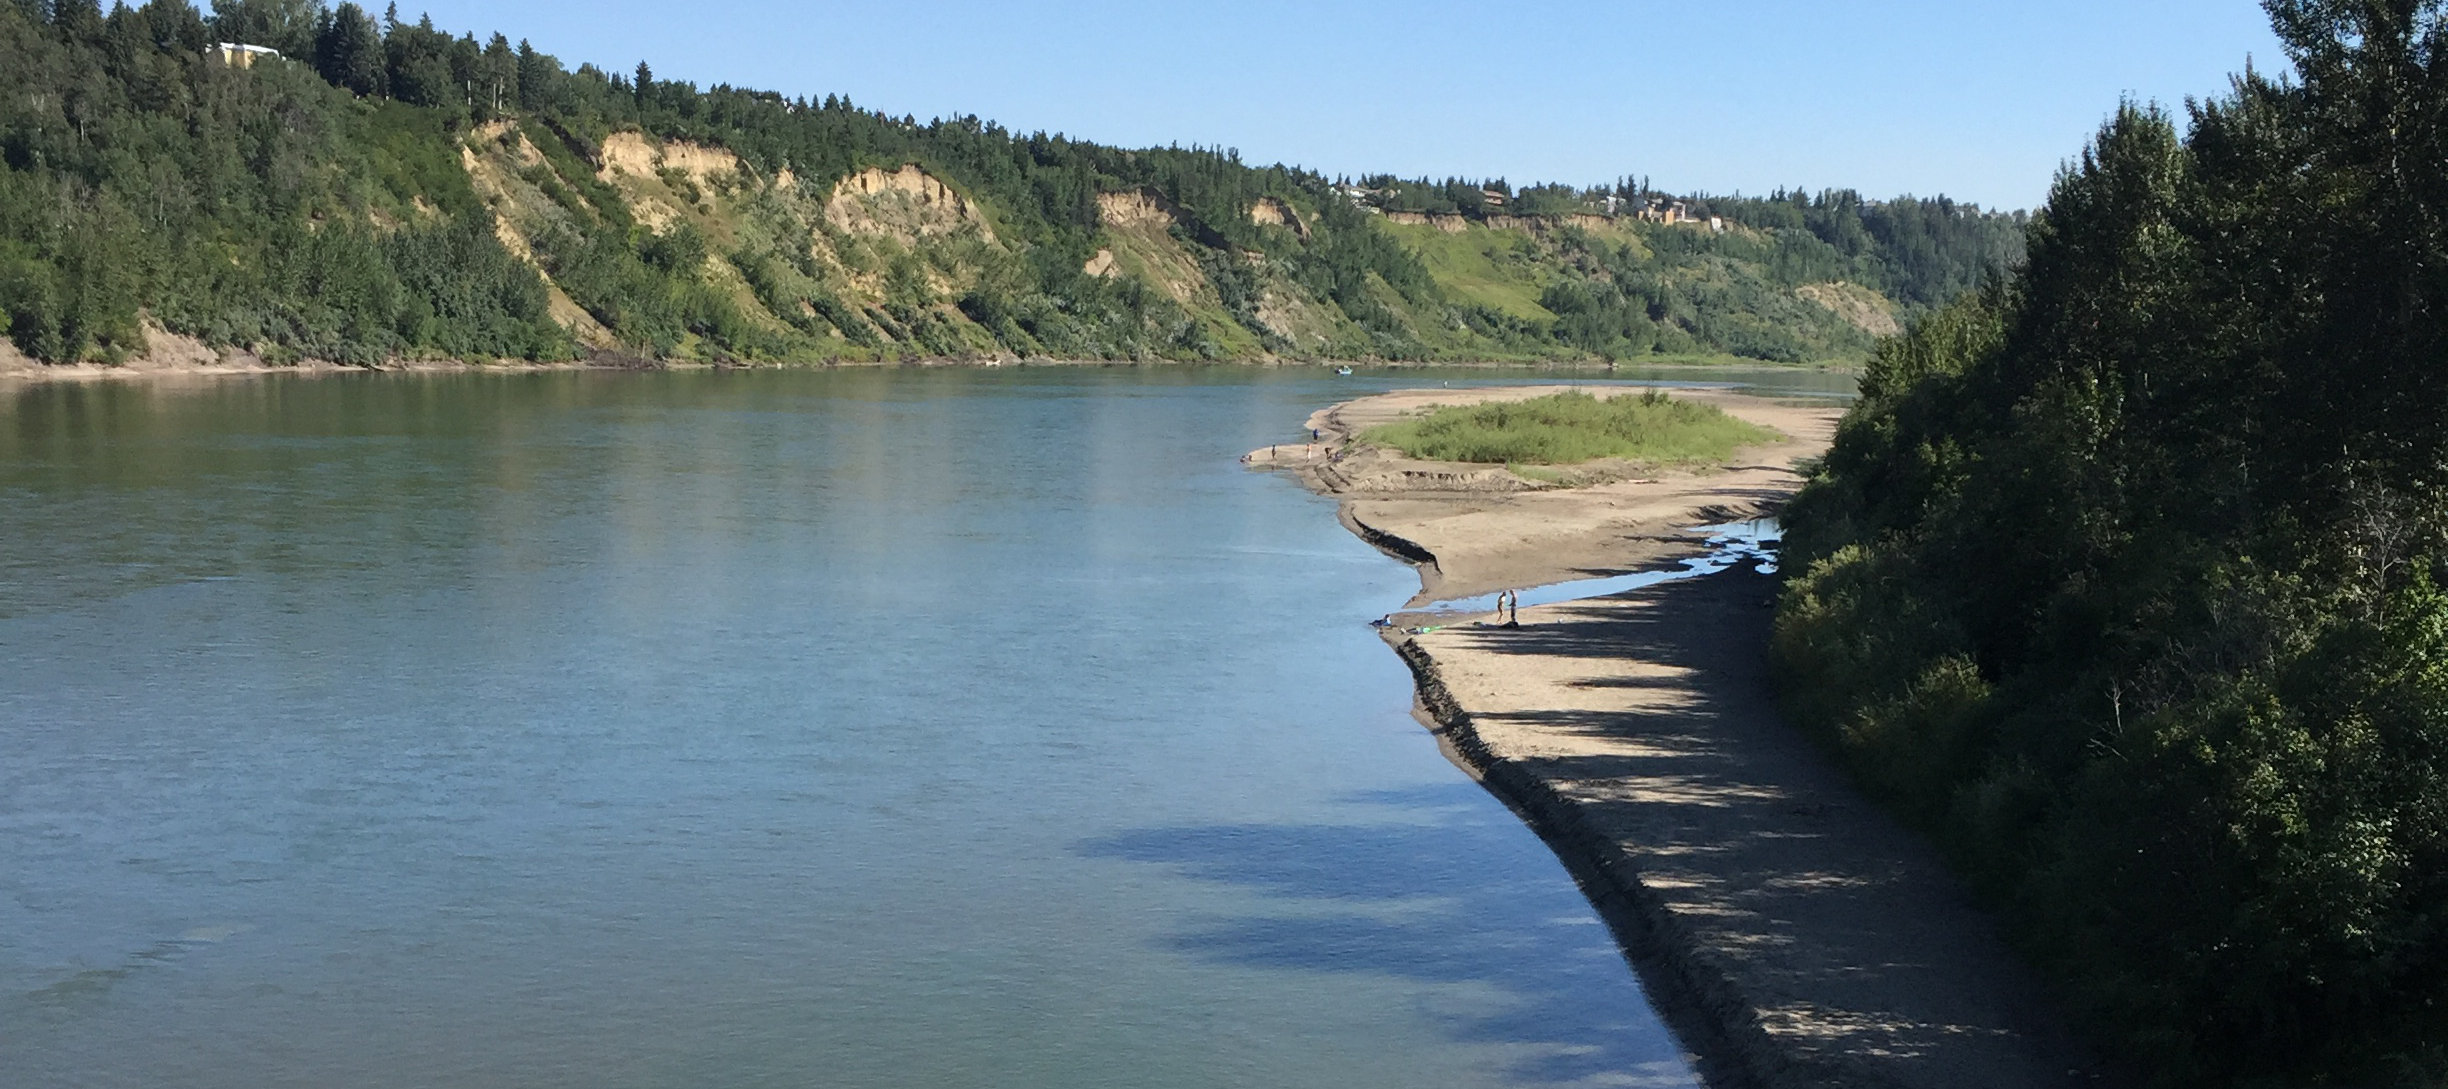 Sandbar near Fort Edmonton added to testing program, latest results available